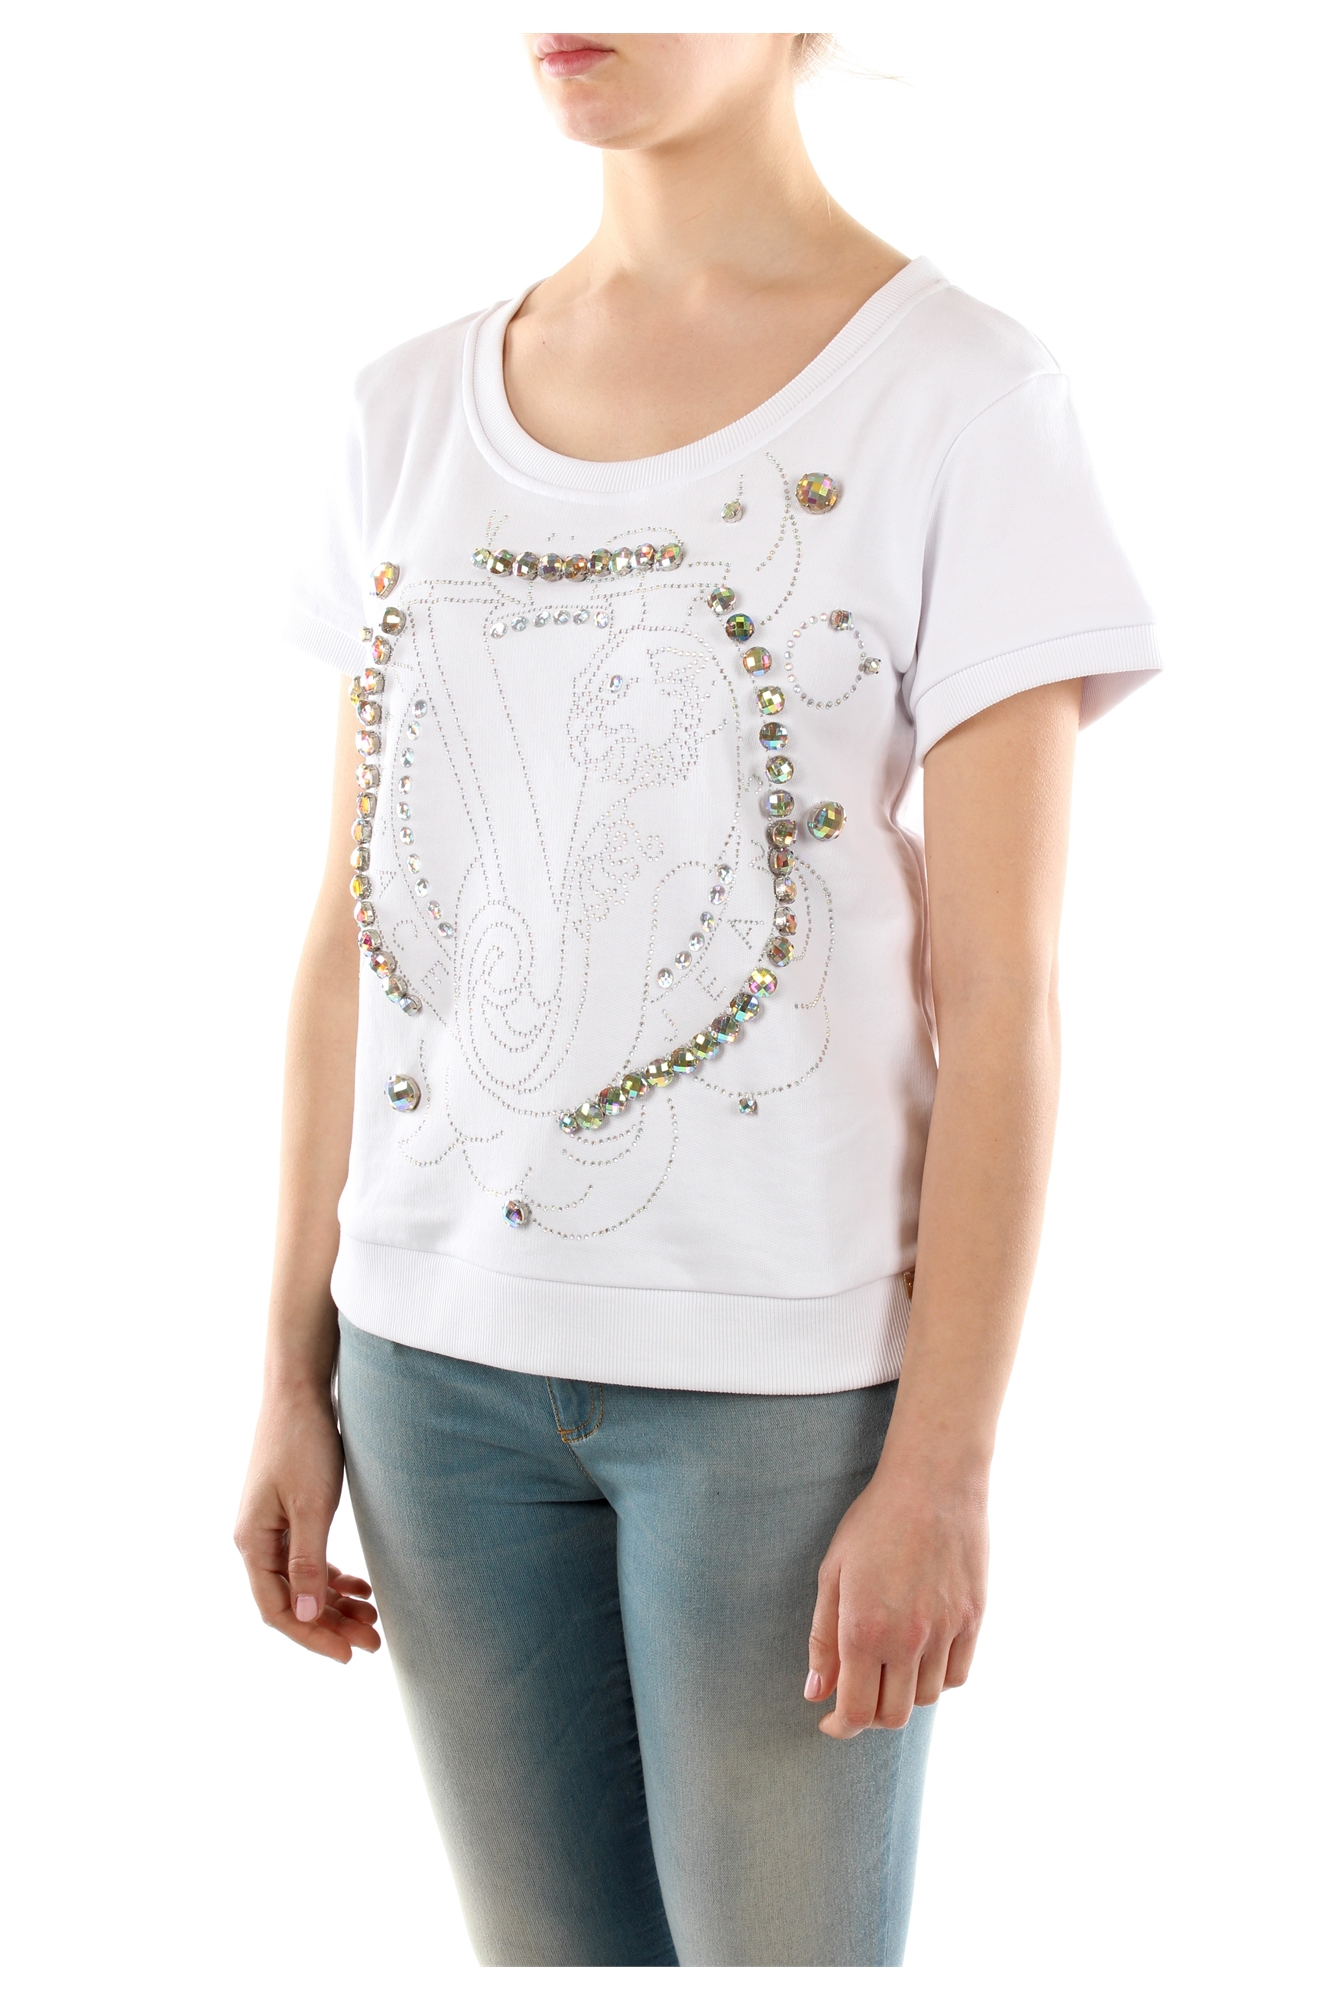 Tops Versace Jeans Women Cotton White B6HLB789LDM30036112003 | eBay